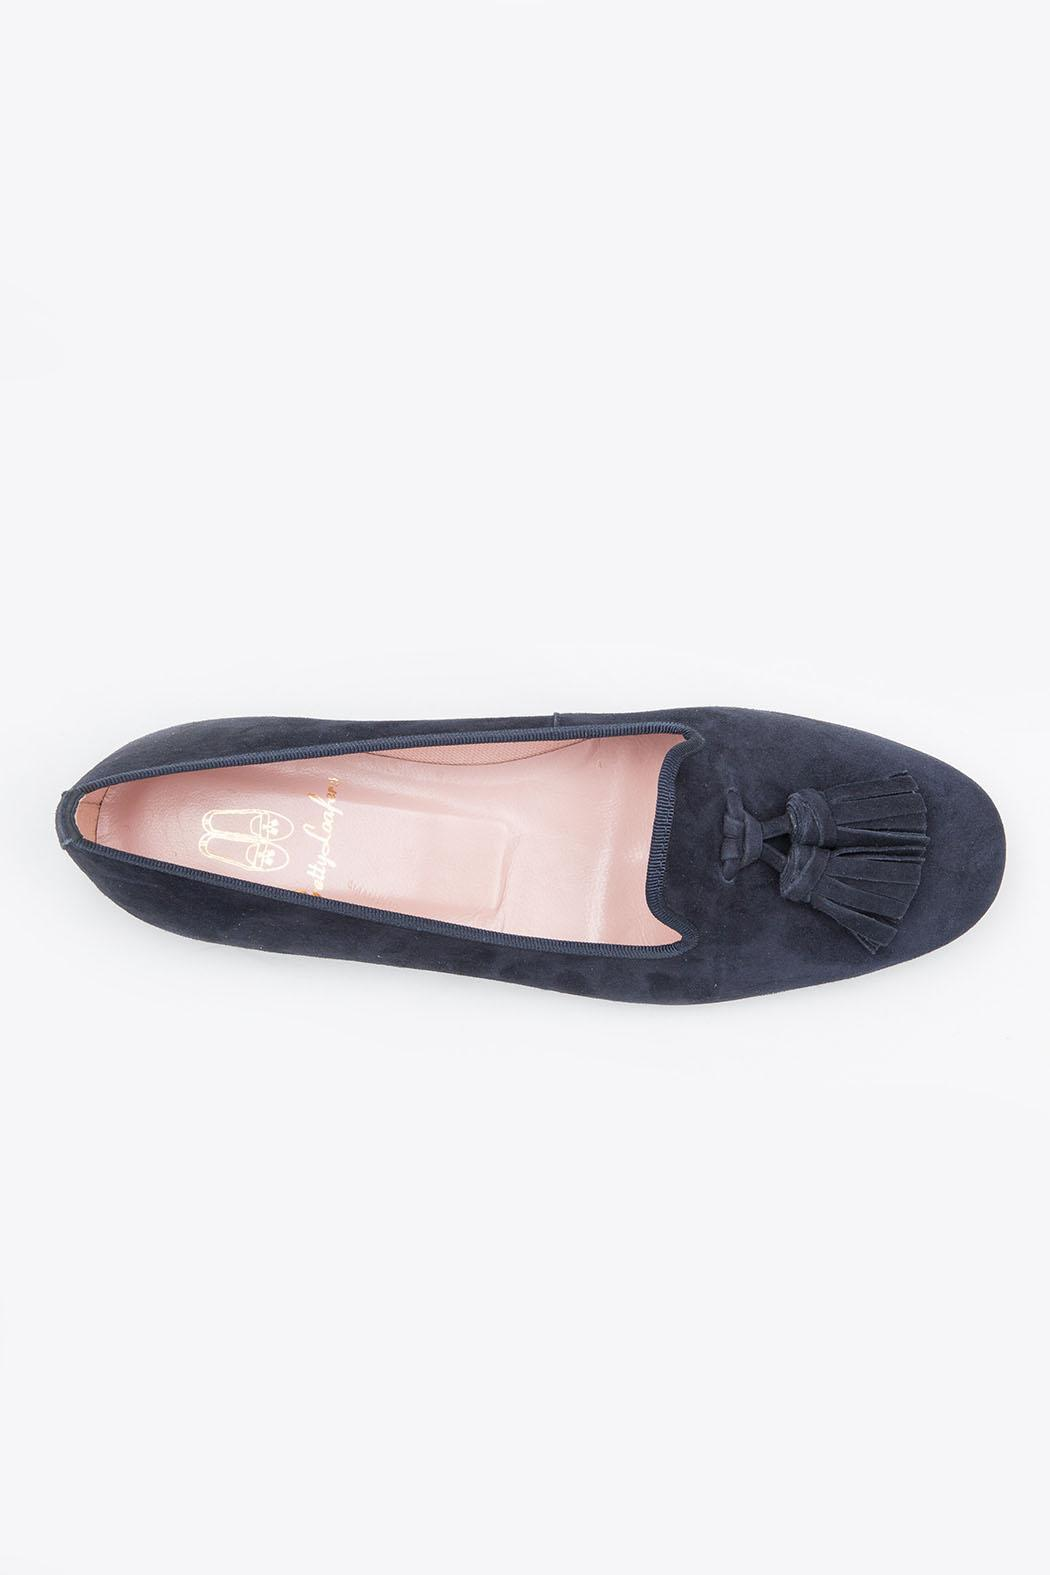 Pretty Ballerinas Suede Loafers - Back Cropped Image